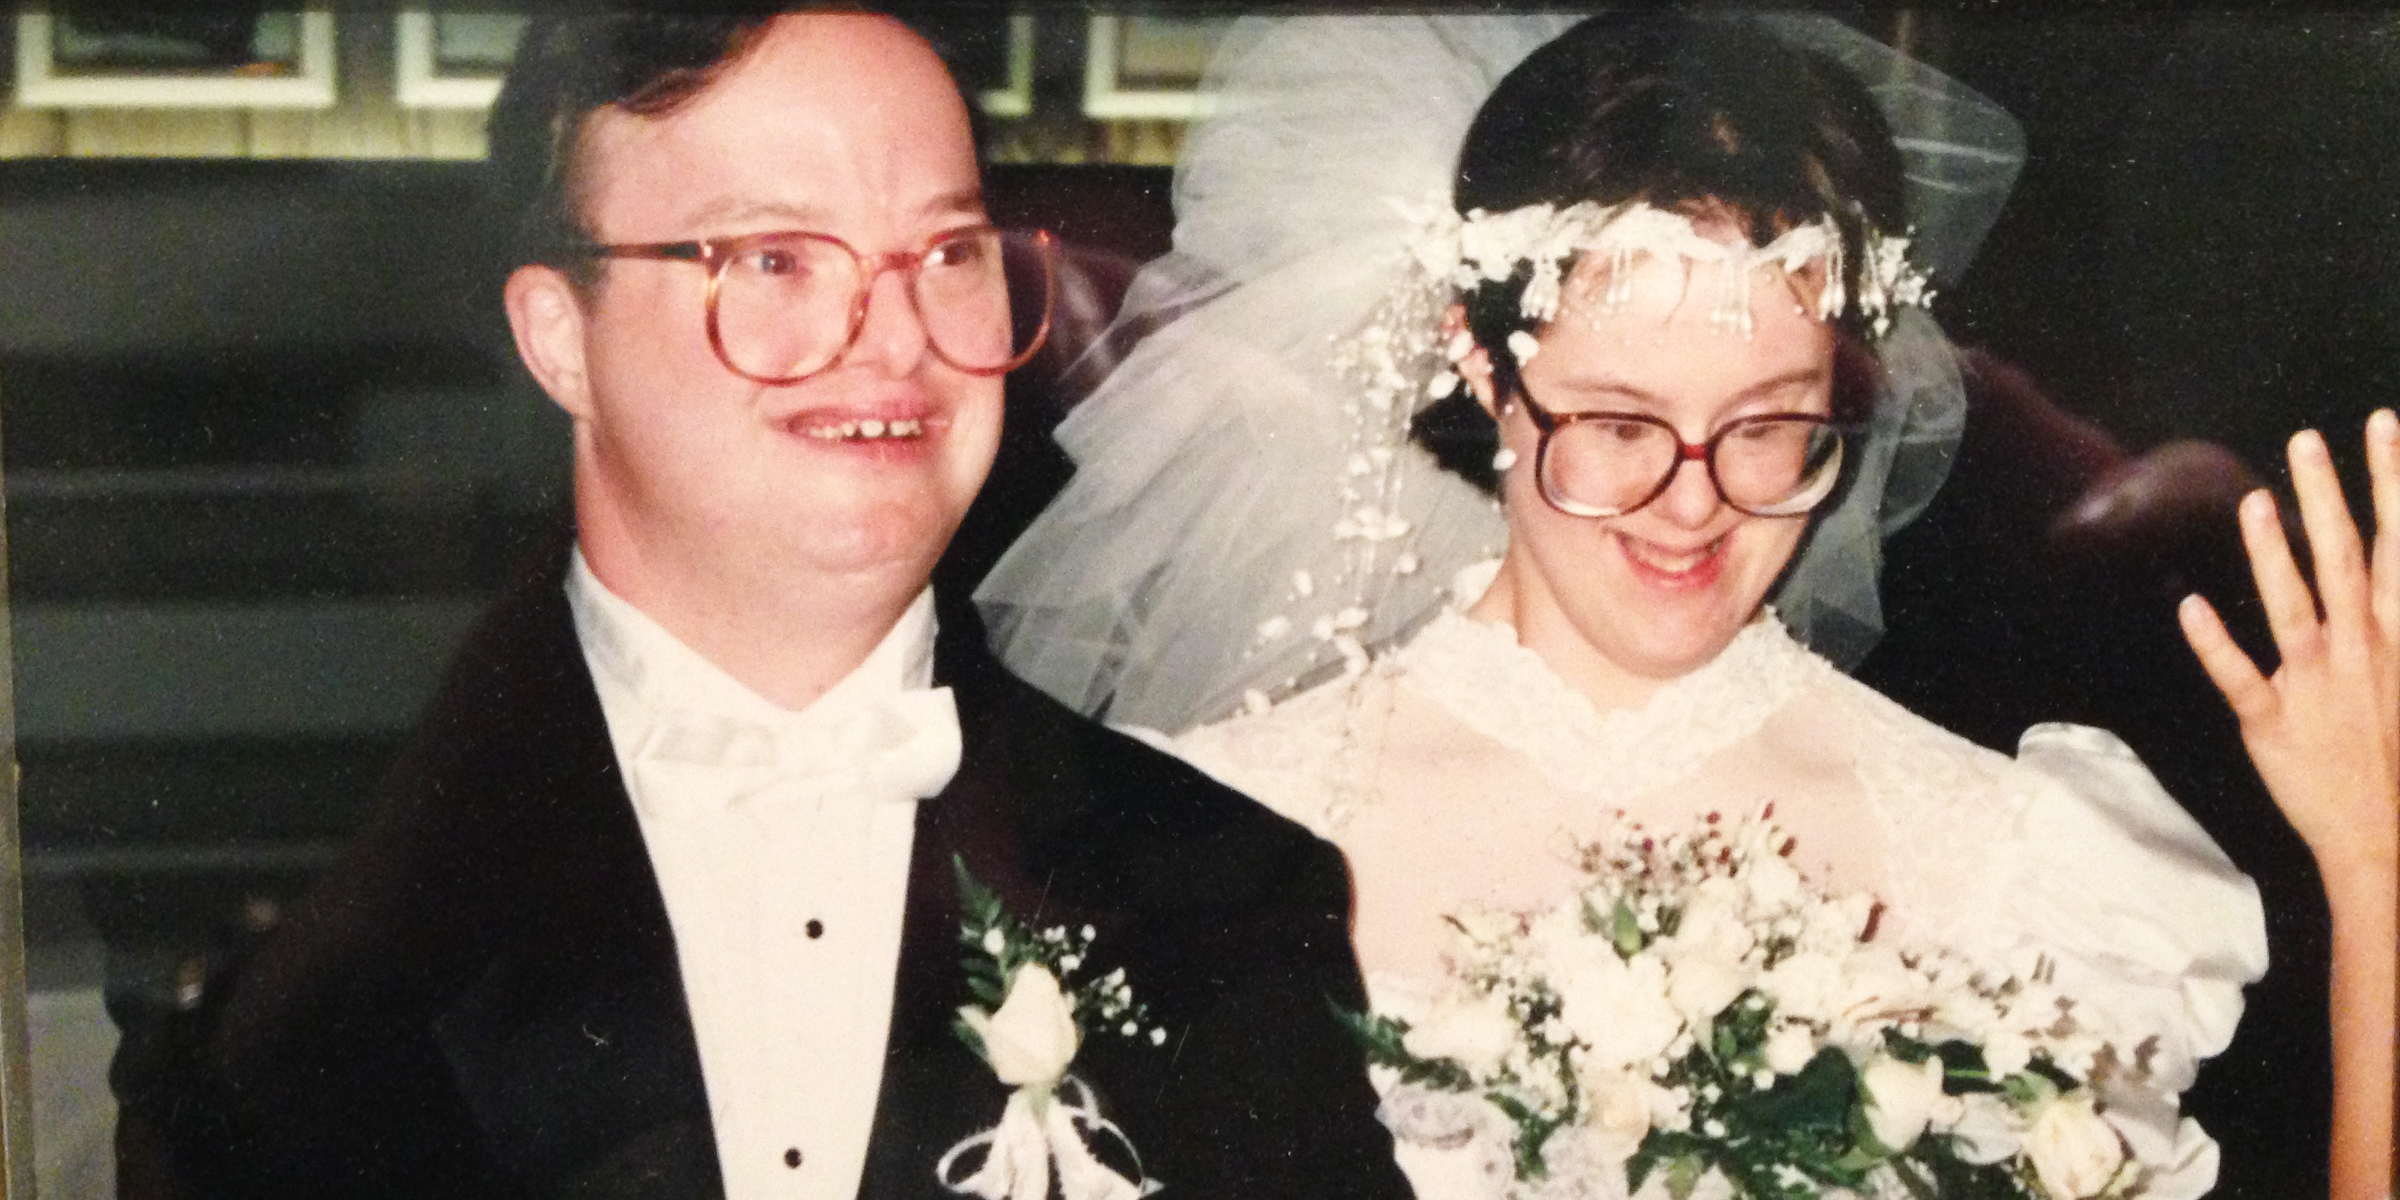 couple with down syndrome celebrates 25 years of marriage